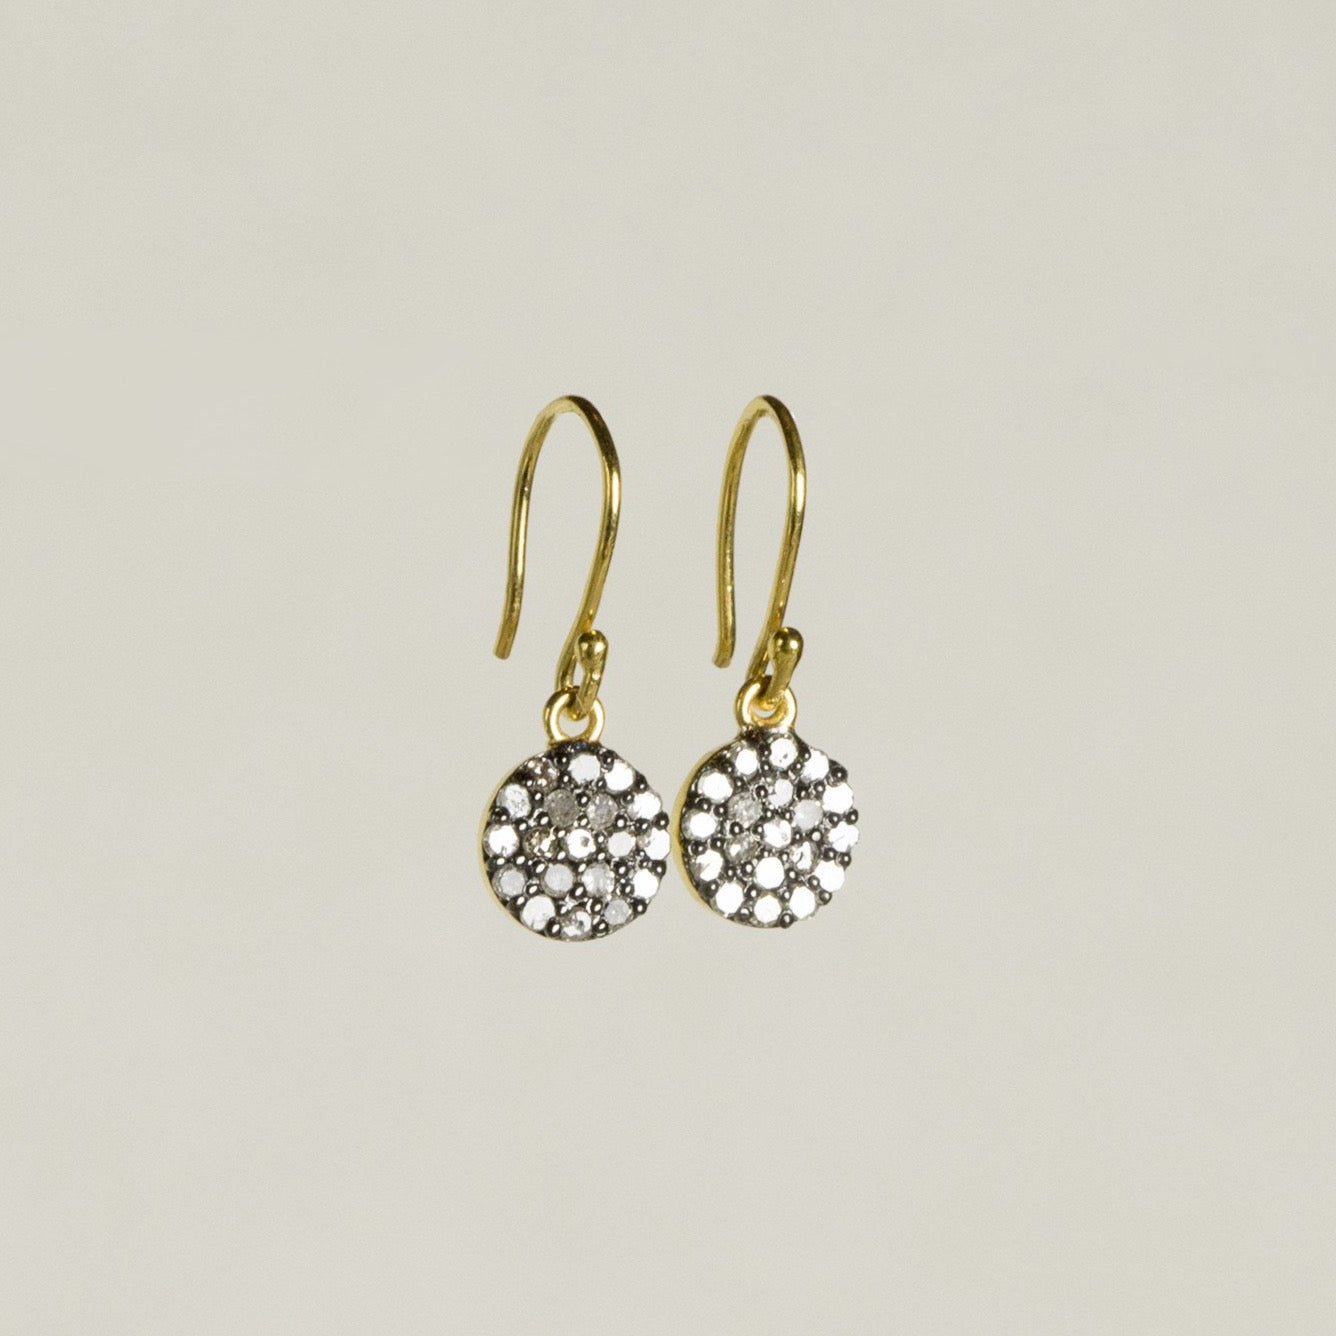 felt Affordable Diamond Range Disc Drop Earrings